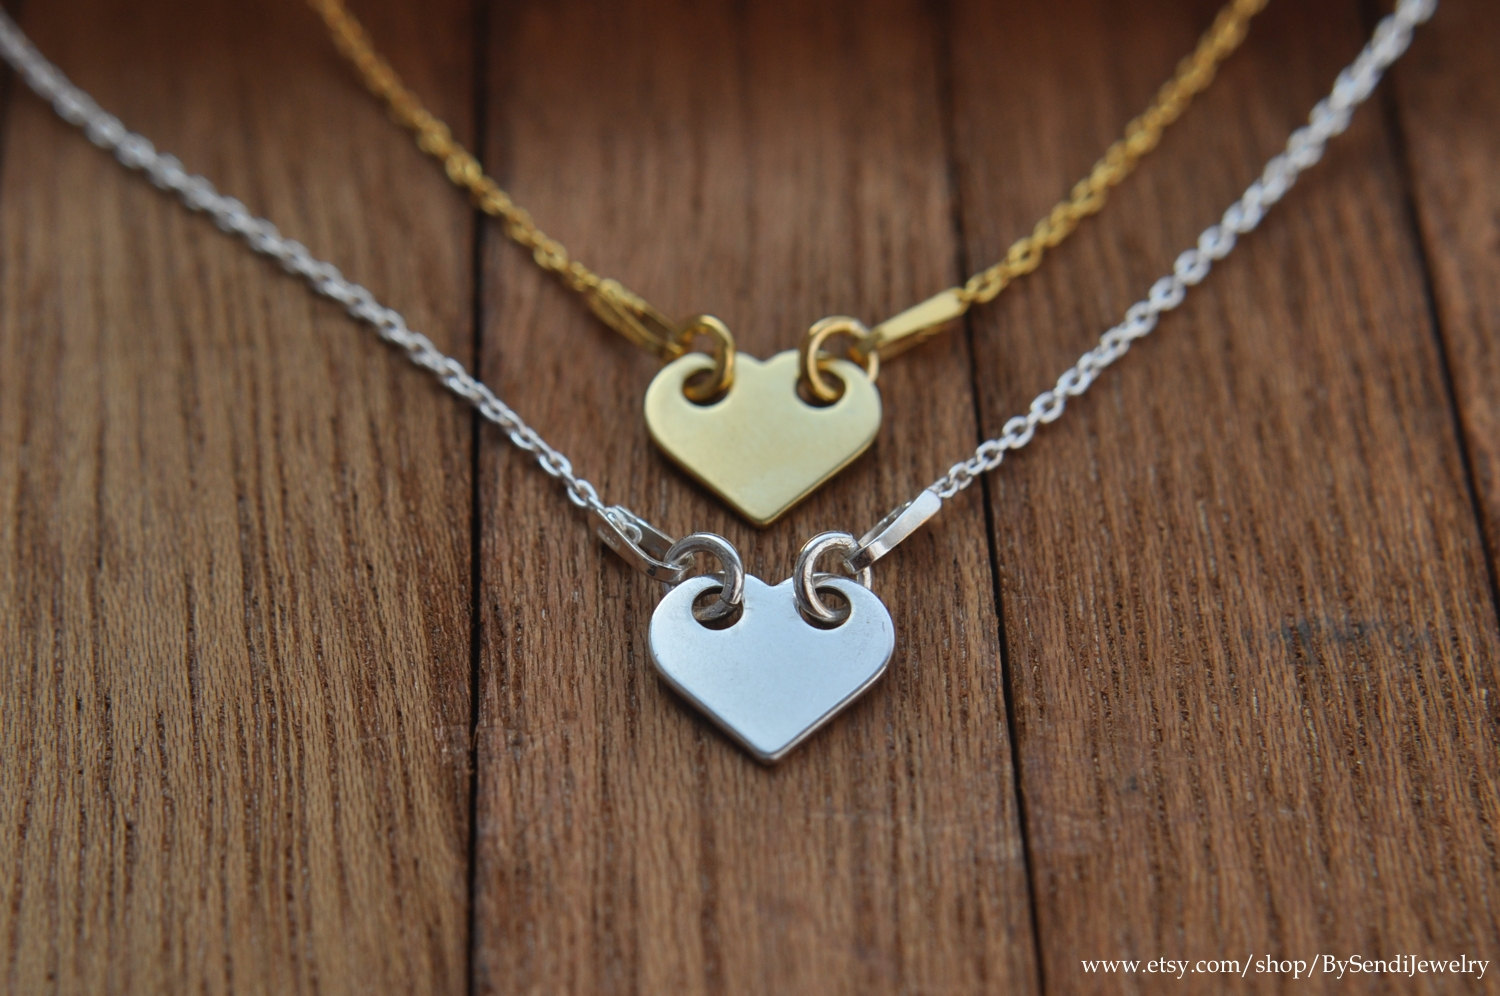 Small heart necklace / delicate heart necklace / silver 925 / chain heart / gold plated / gold plated silver / necklace with heart / pendant